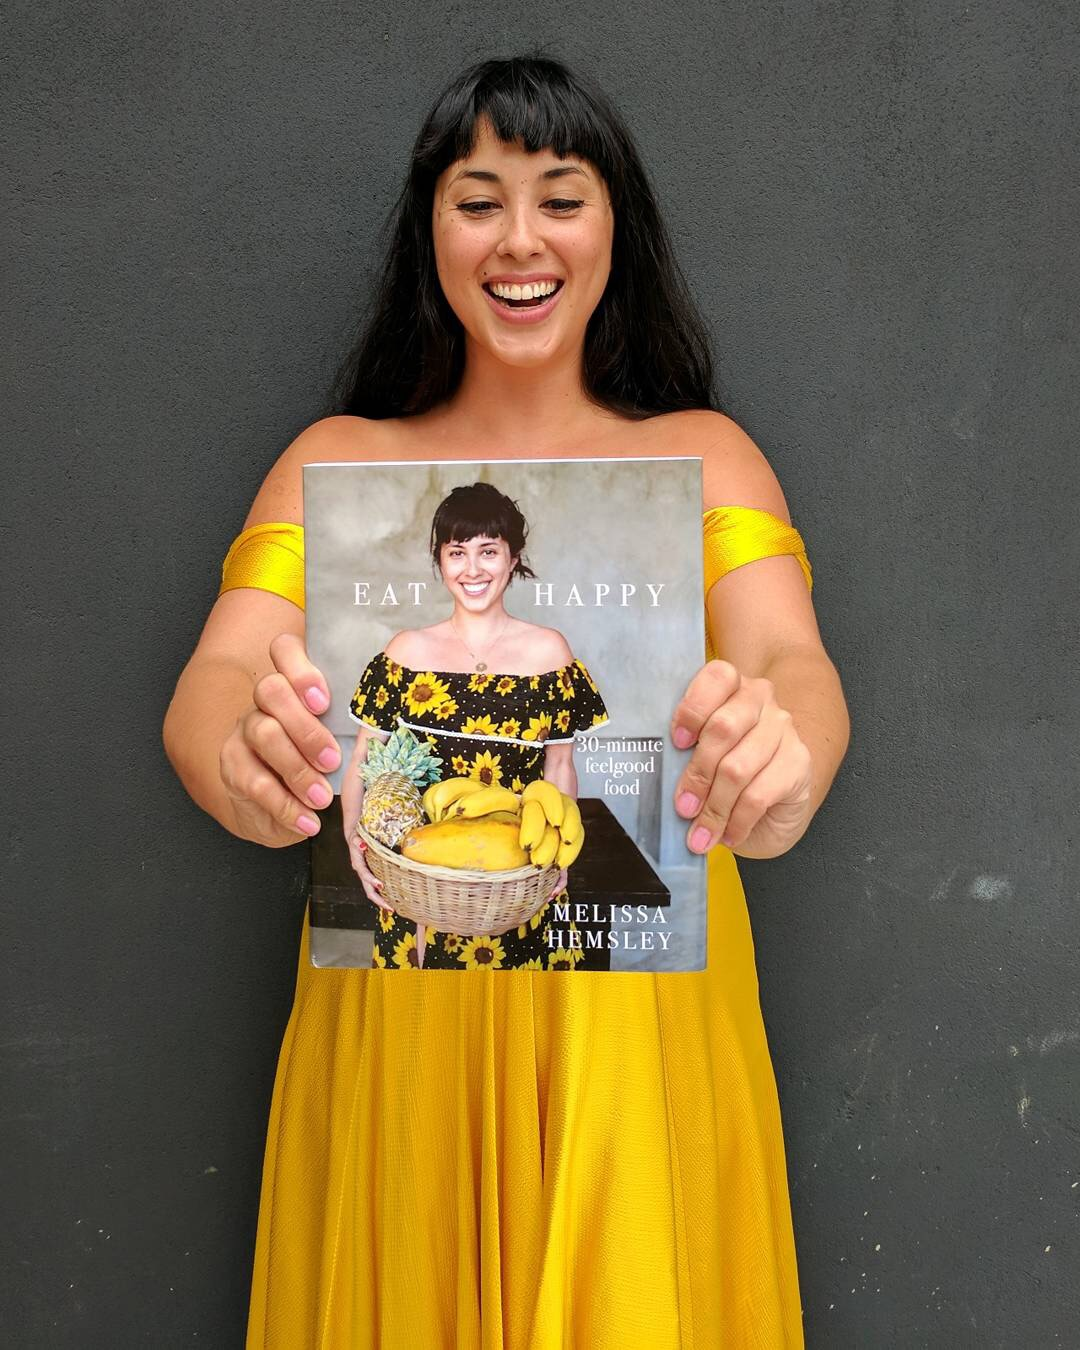 Melissa Hemsley: A walking, talking, sunny-dress wearing advert for eating happy, and appearing at Shelf Help/High Road House in April